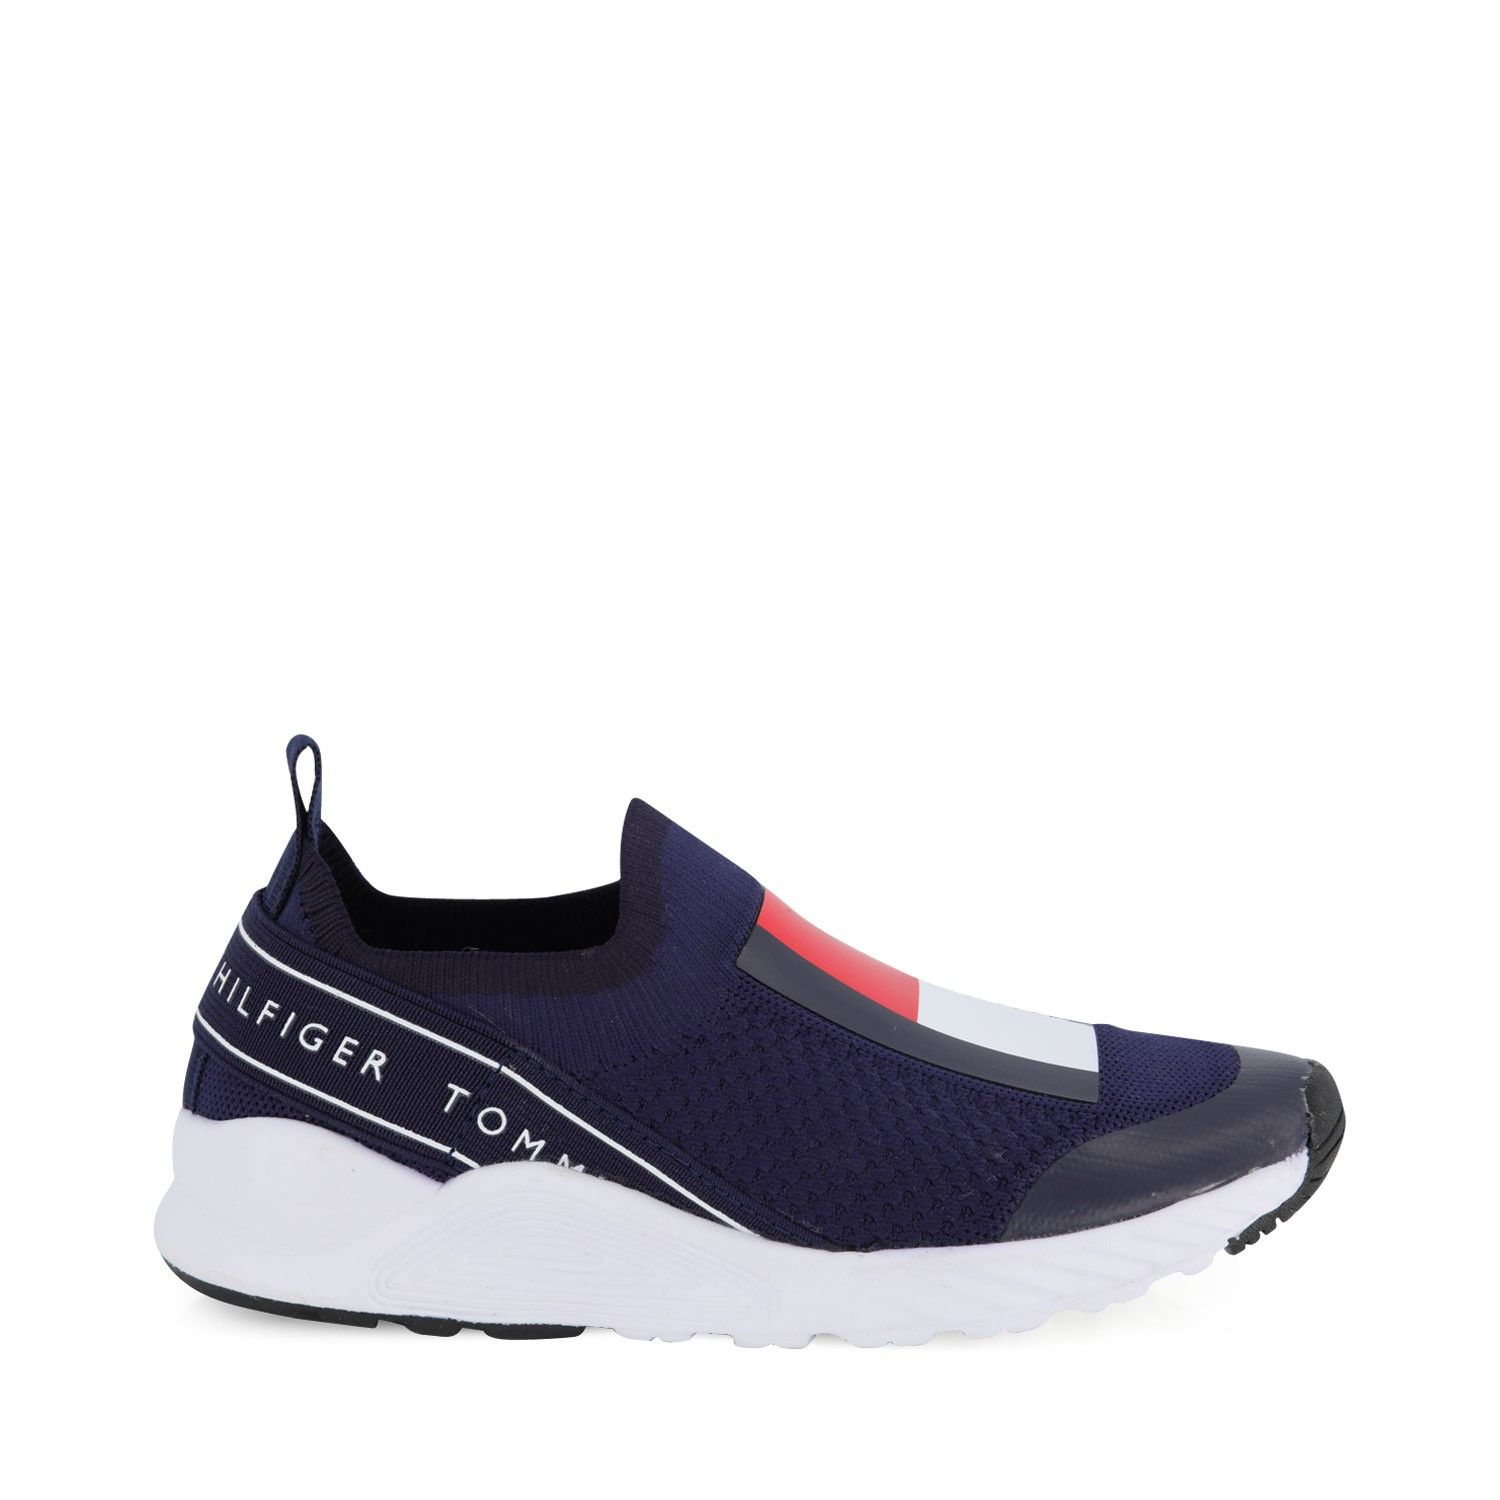 Picture of Tommy Hilfiger 30629 kids sneakers navy